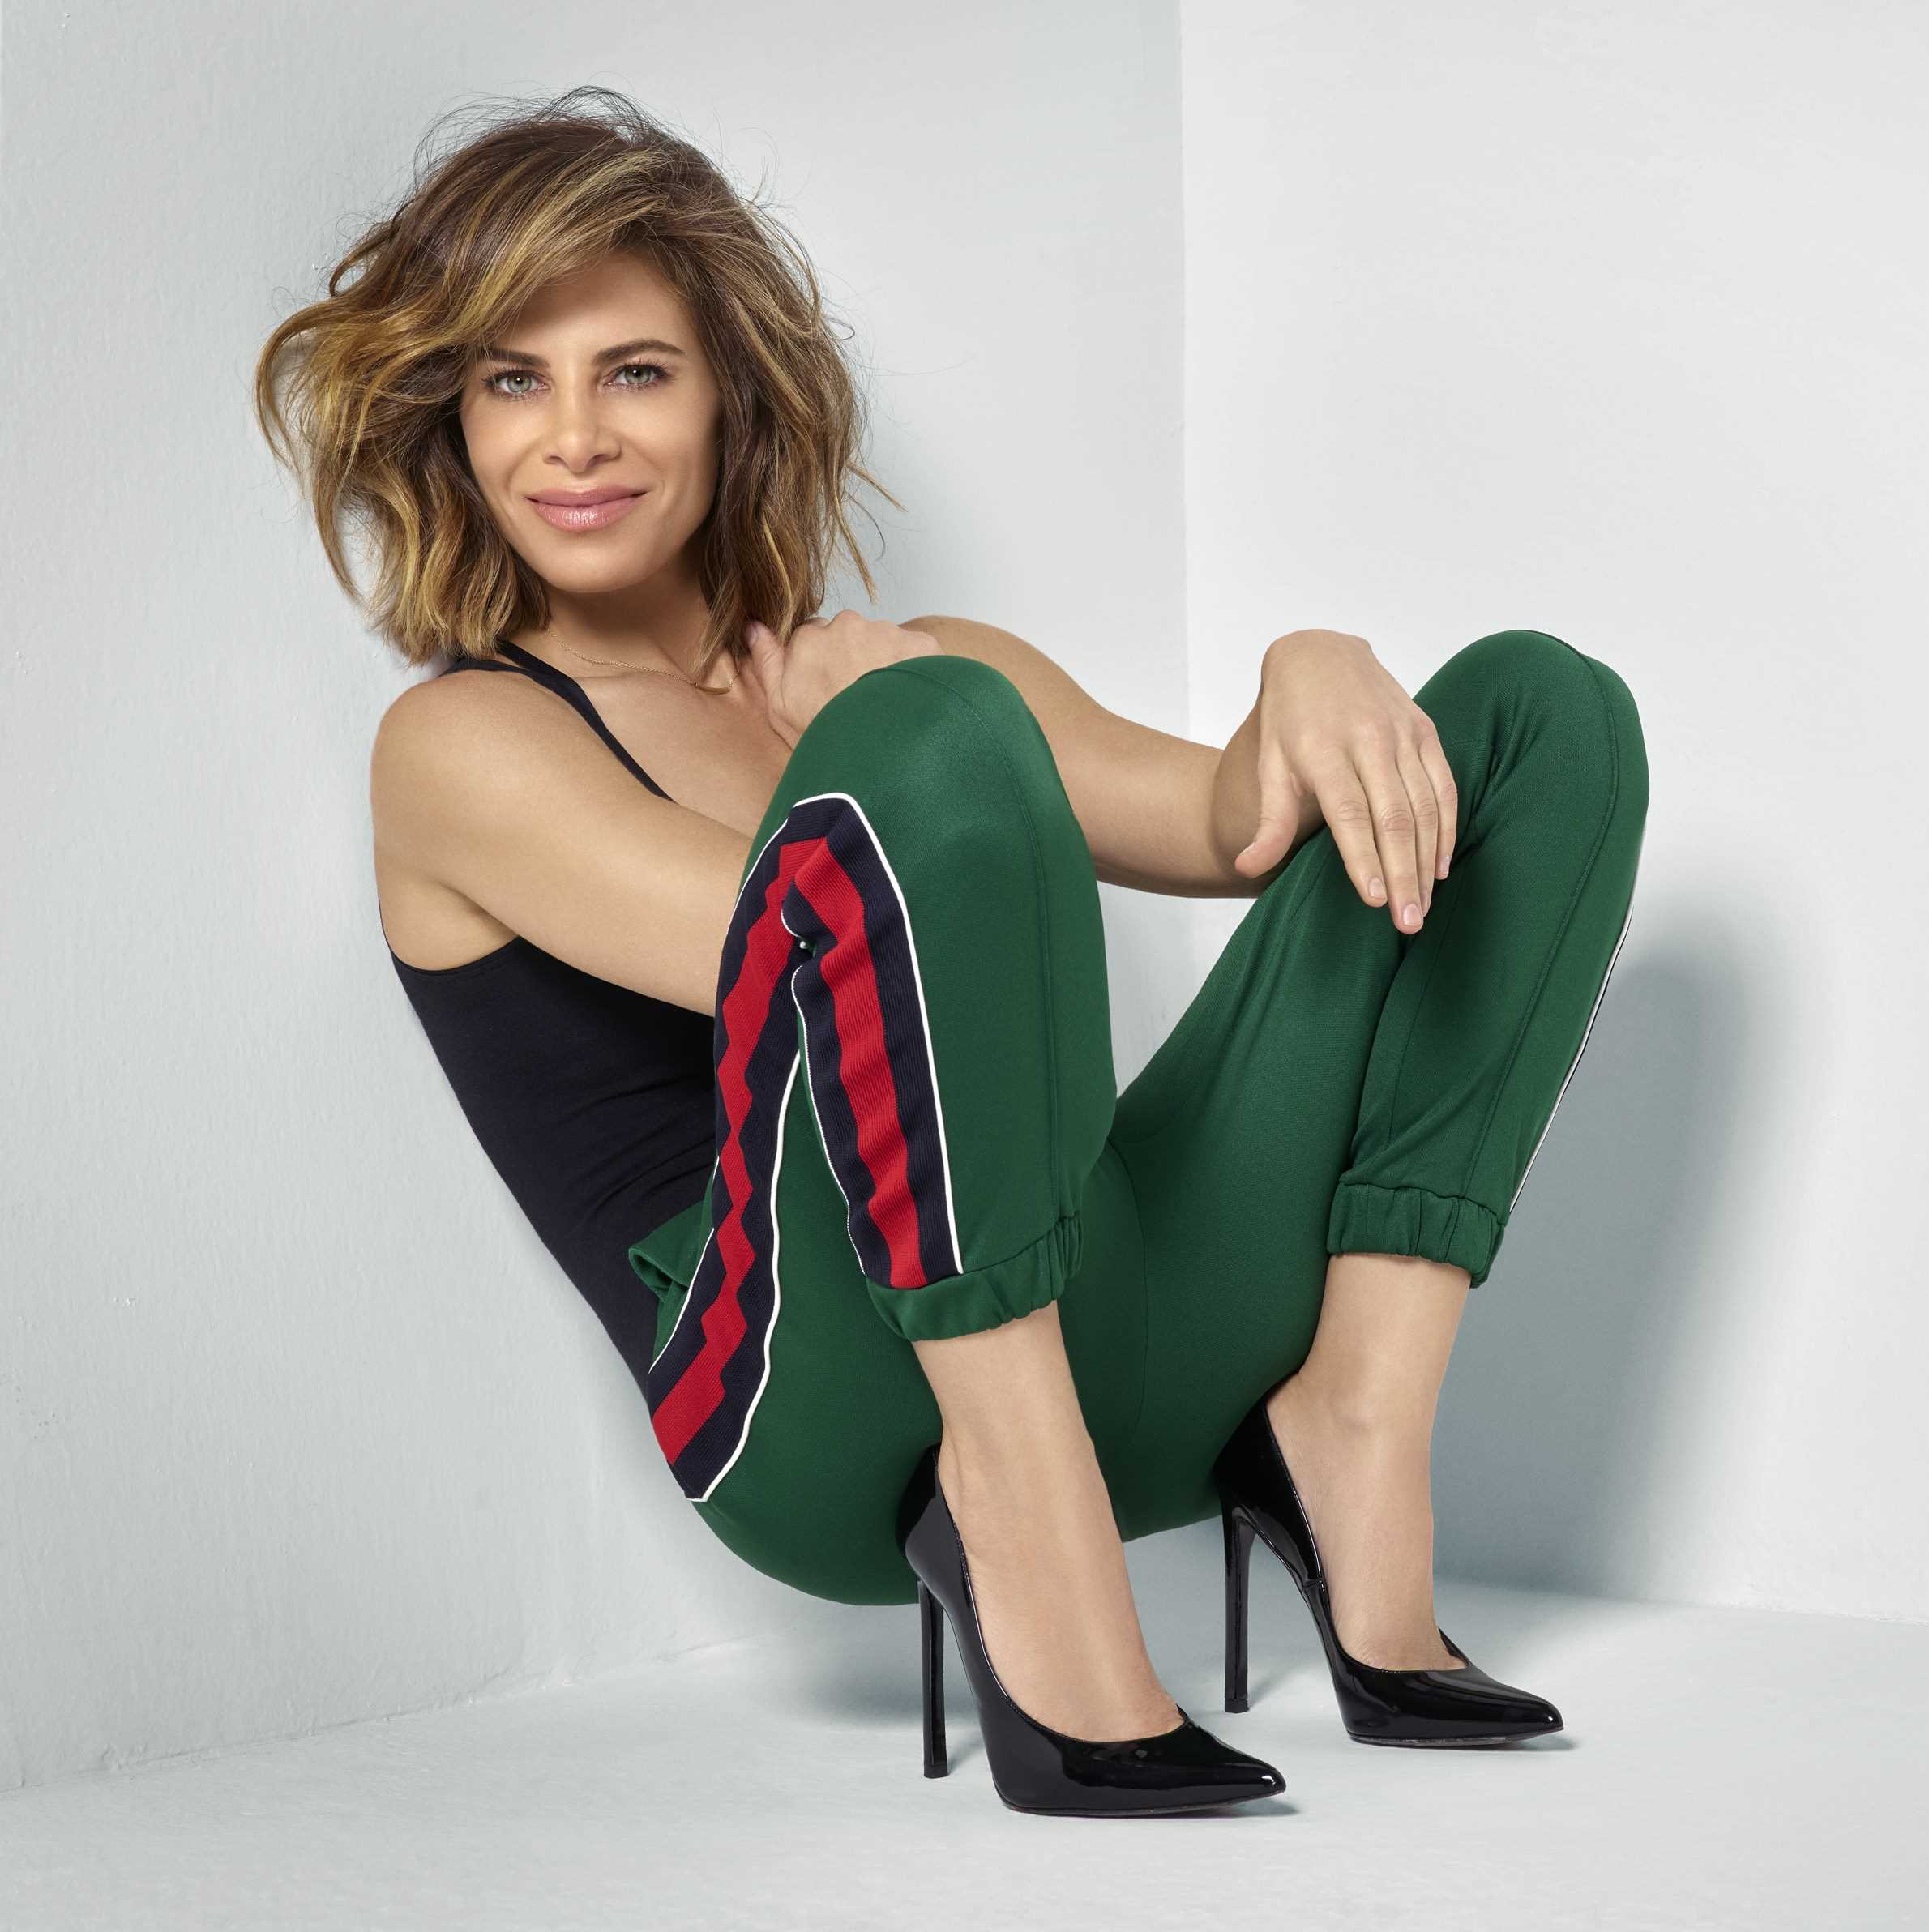 Jillian Michaels, Health & Wellness Speaker